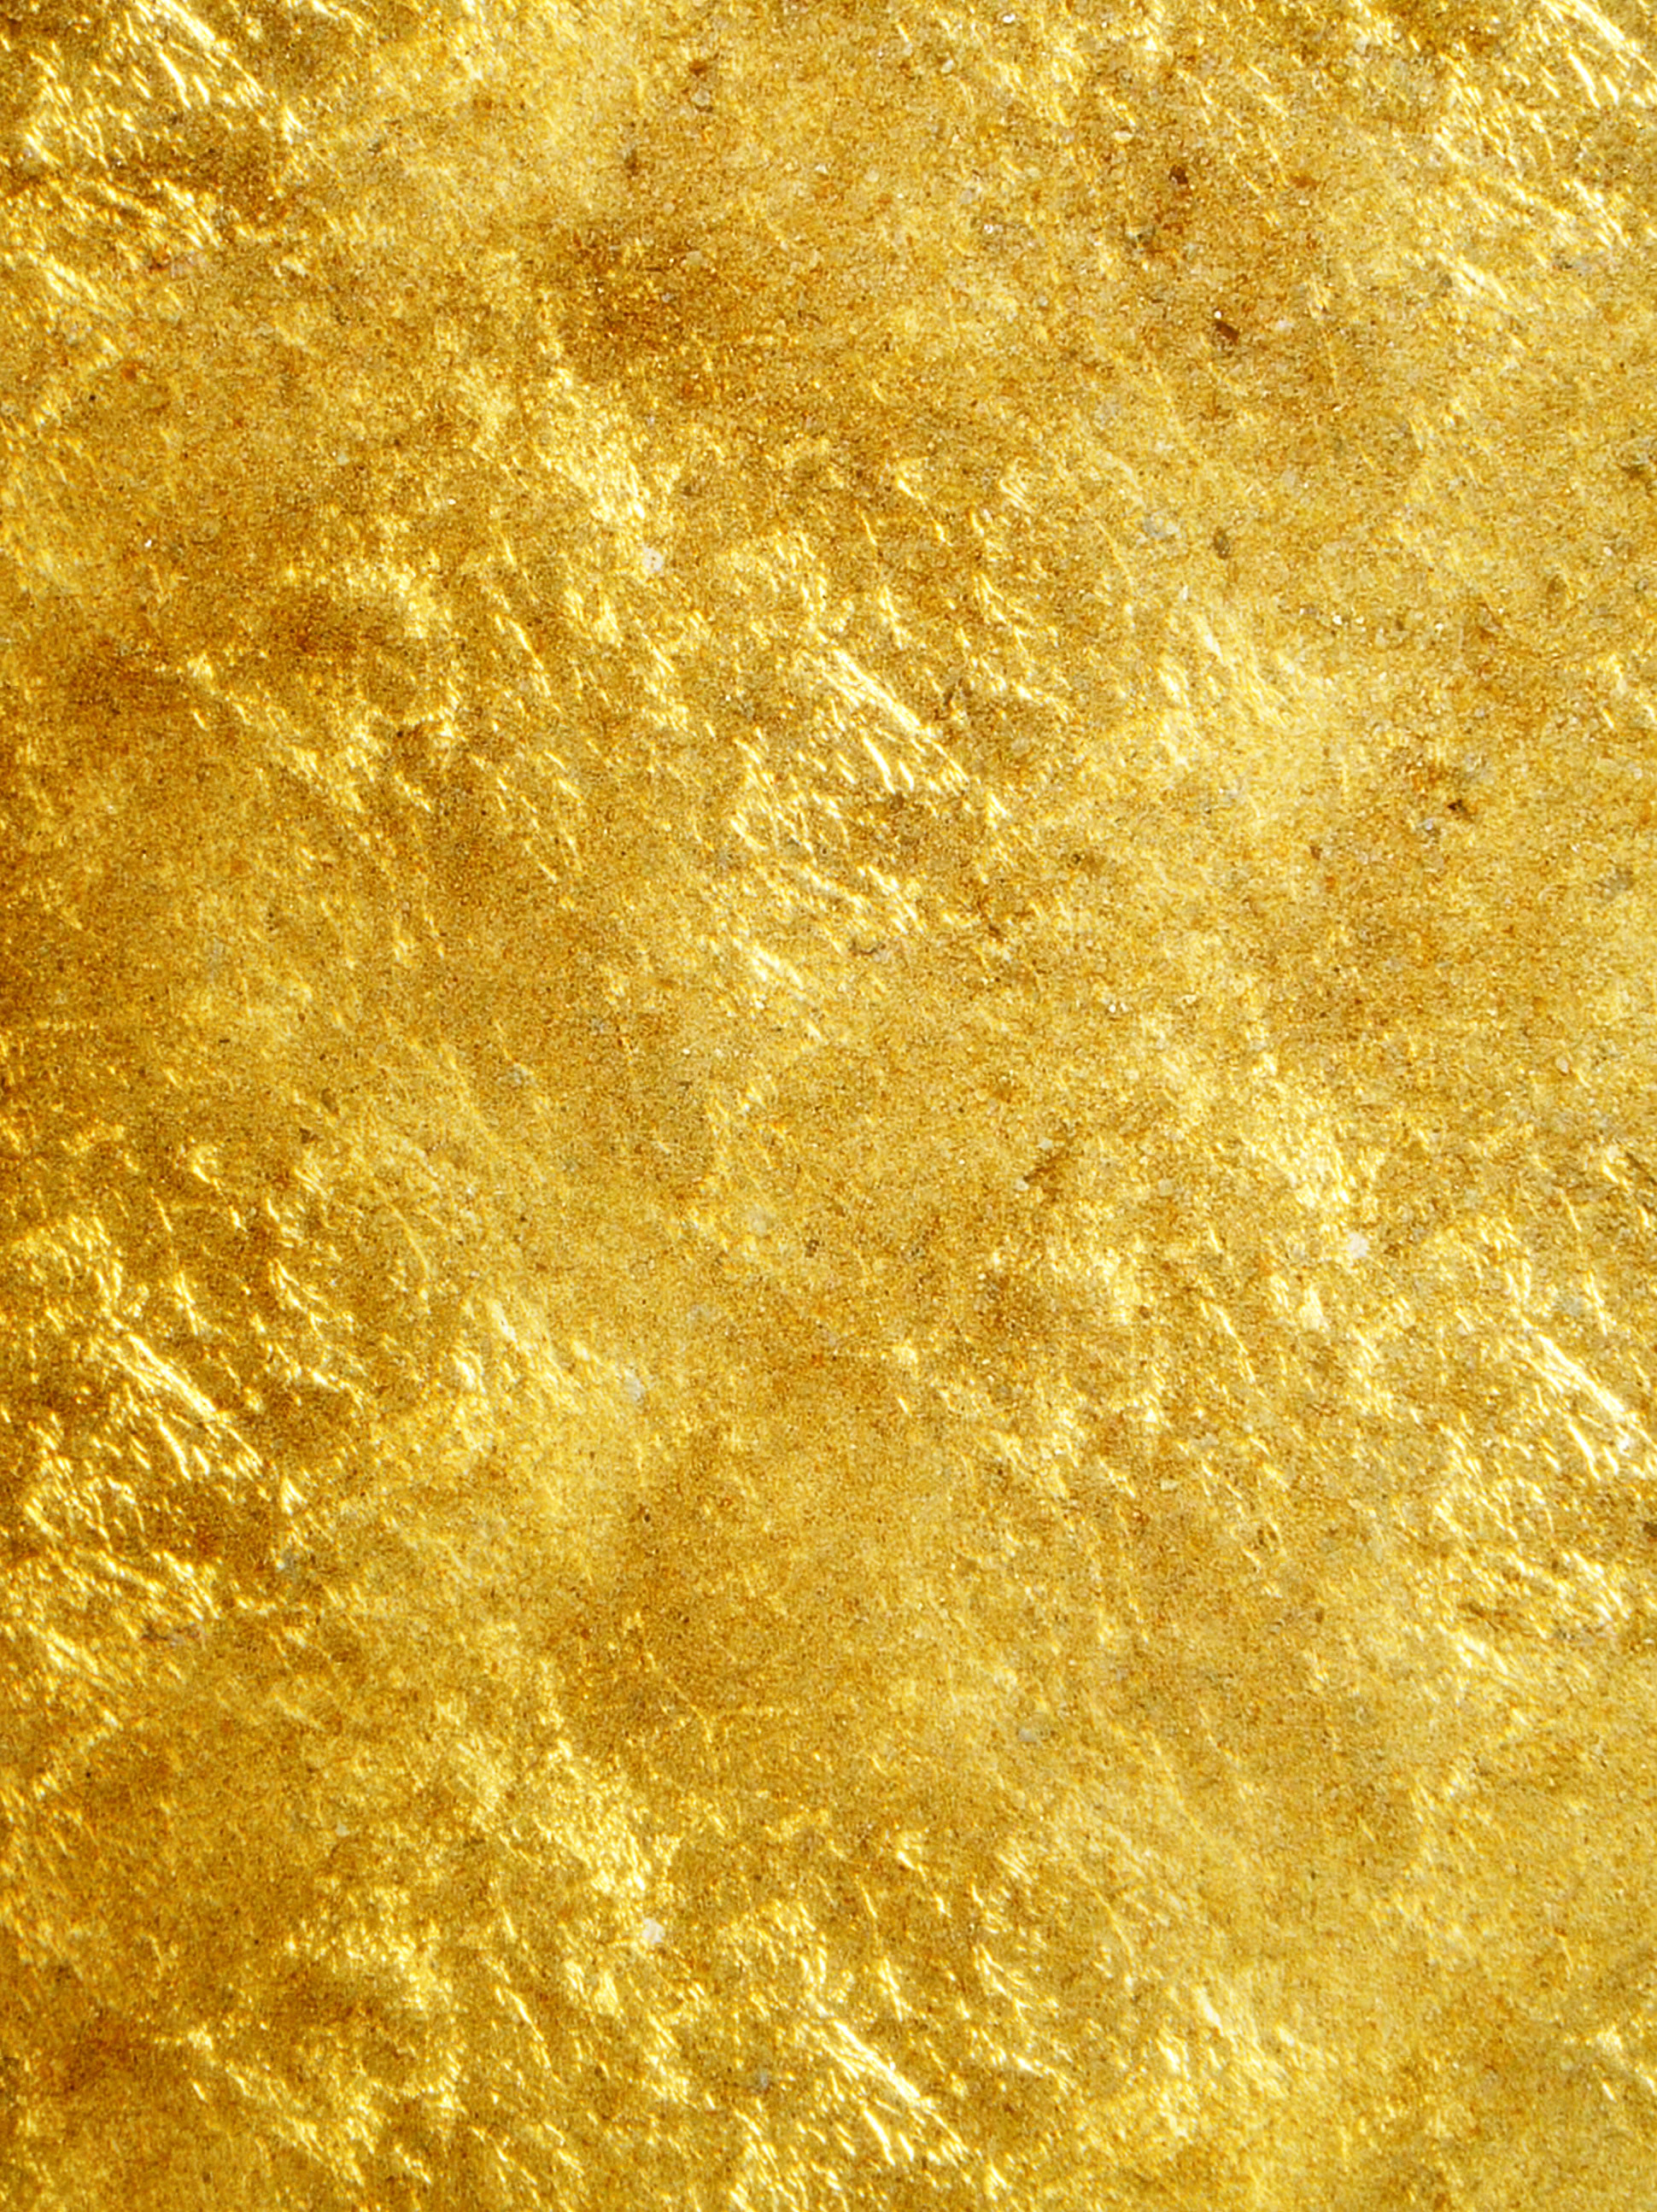 Gold Backgrounds Images The Art Mad Wallpapers 1940x2590